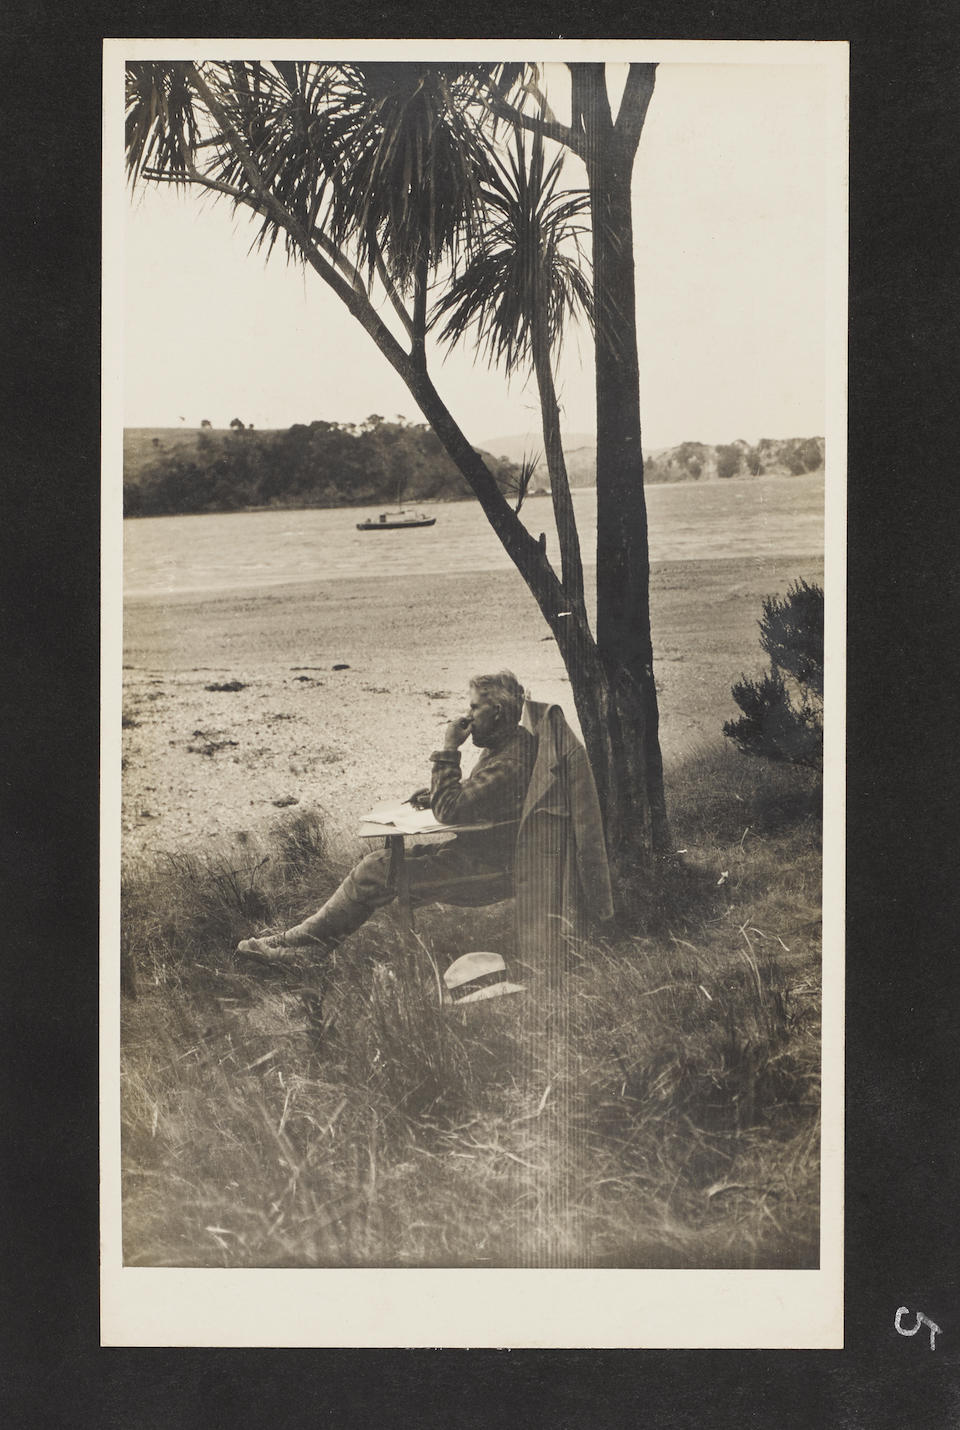 GREY, ZANE. 1872-1939. Photo album featuring 62 silver gelatin print photographs of Zane Grey and companions fishing for tuna in New Zealand, 1920s, each 221 x 128 mm, all mounted to 290 x 172 mm leaves,